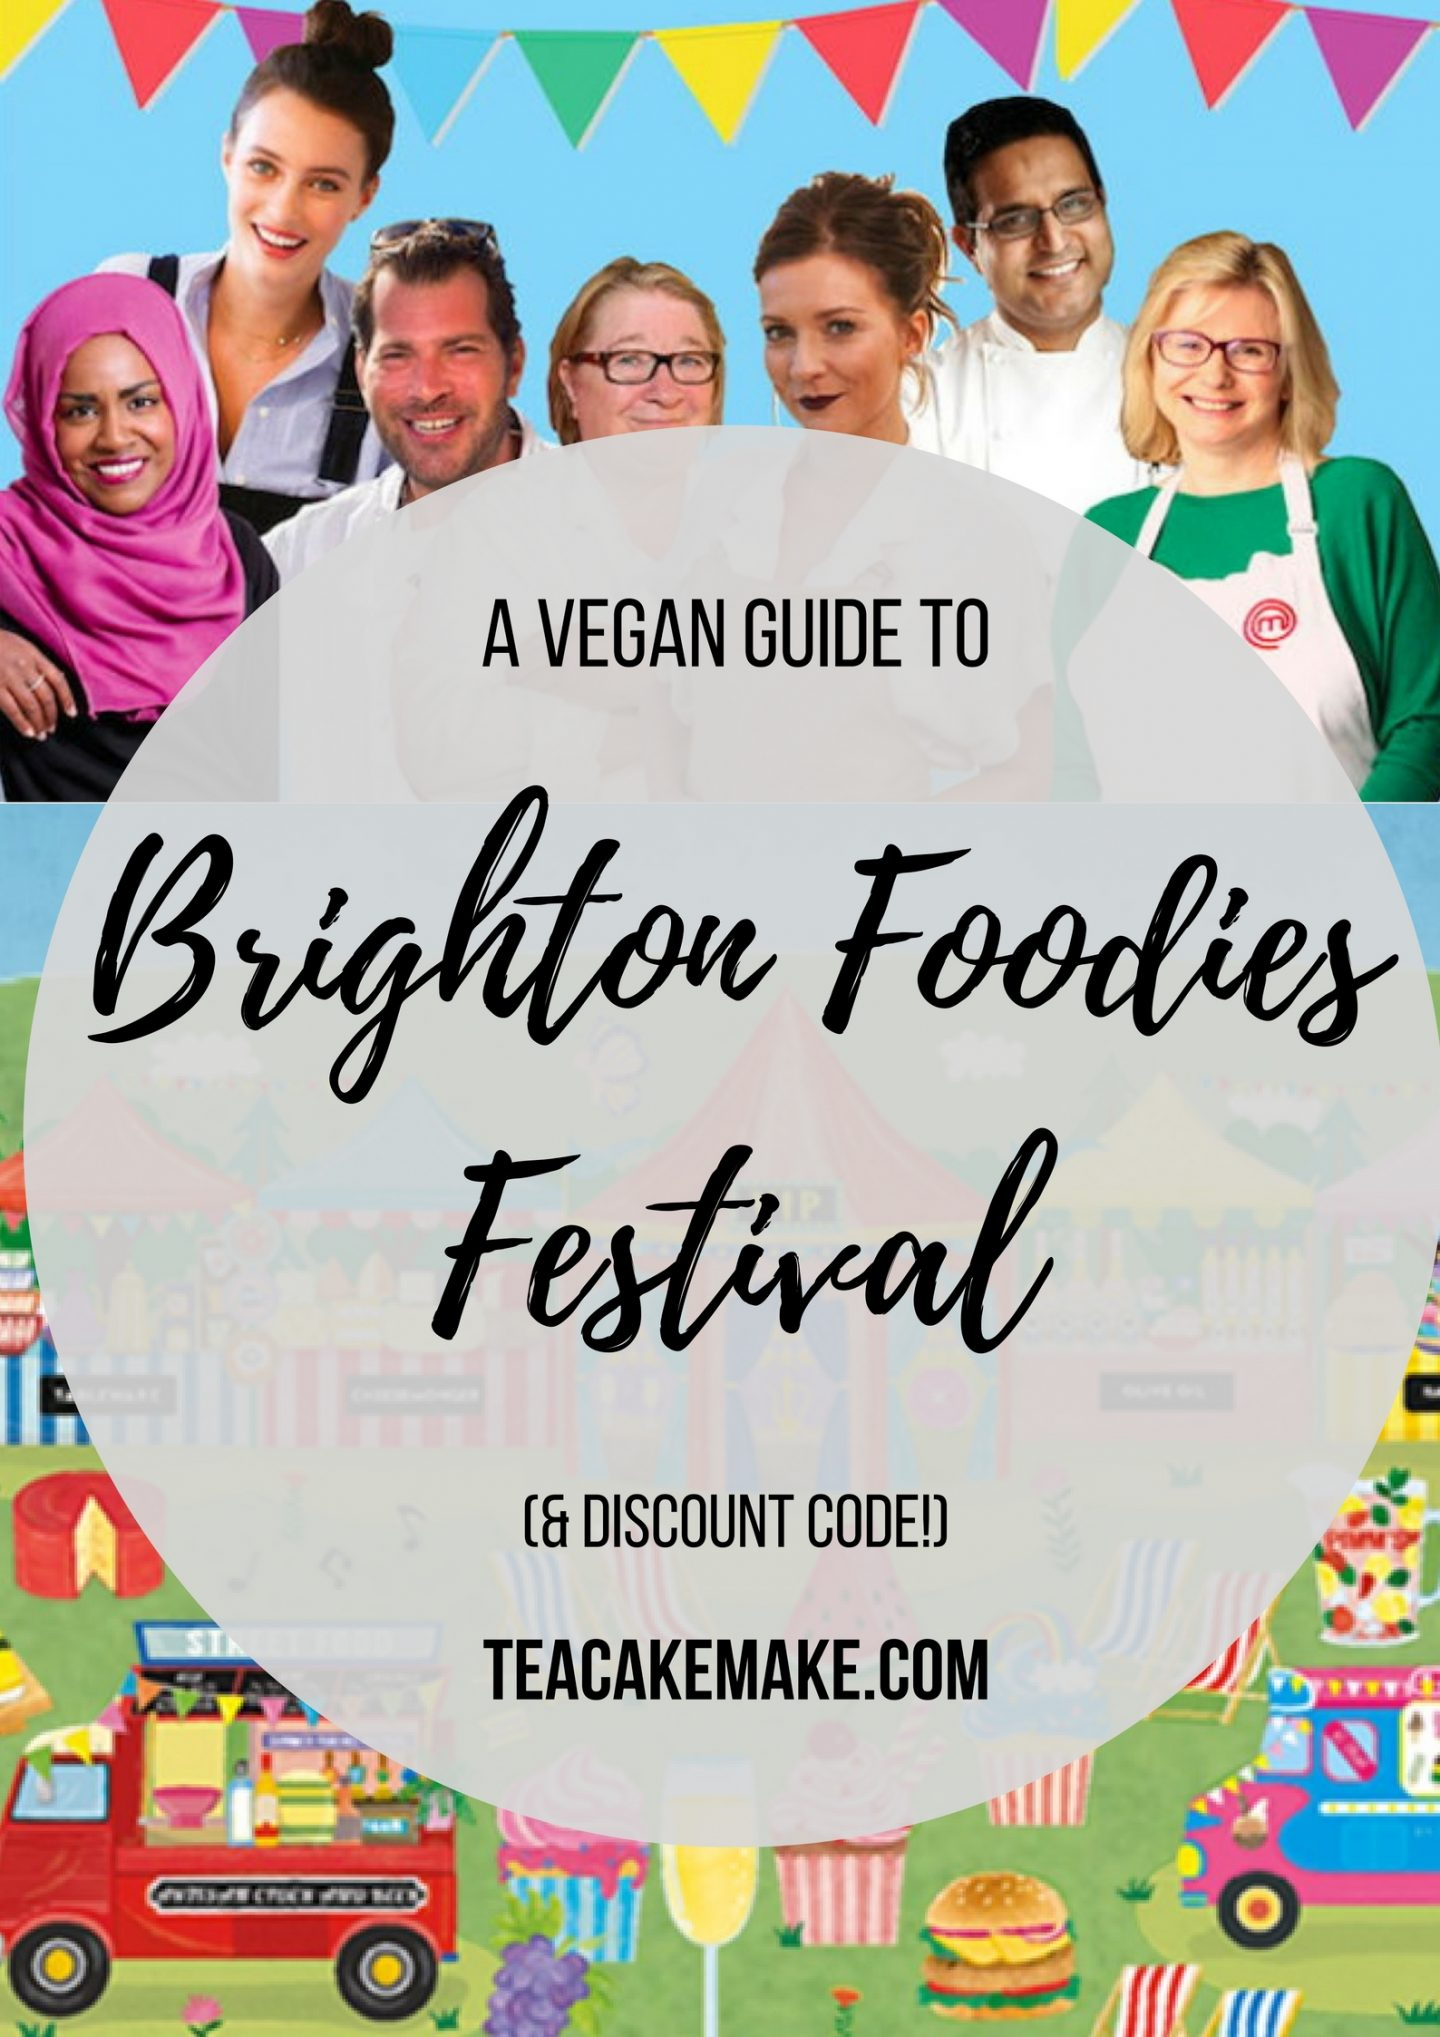 Brighton Foodies Festival Vegan